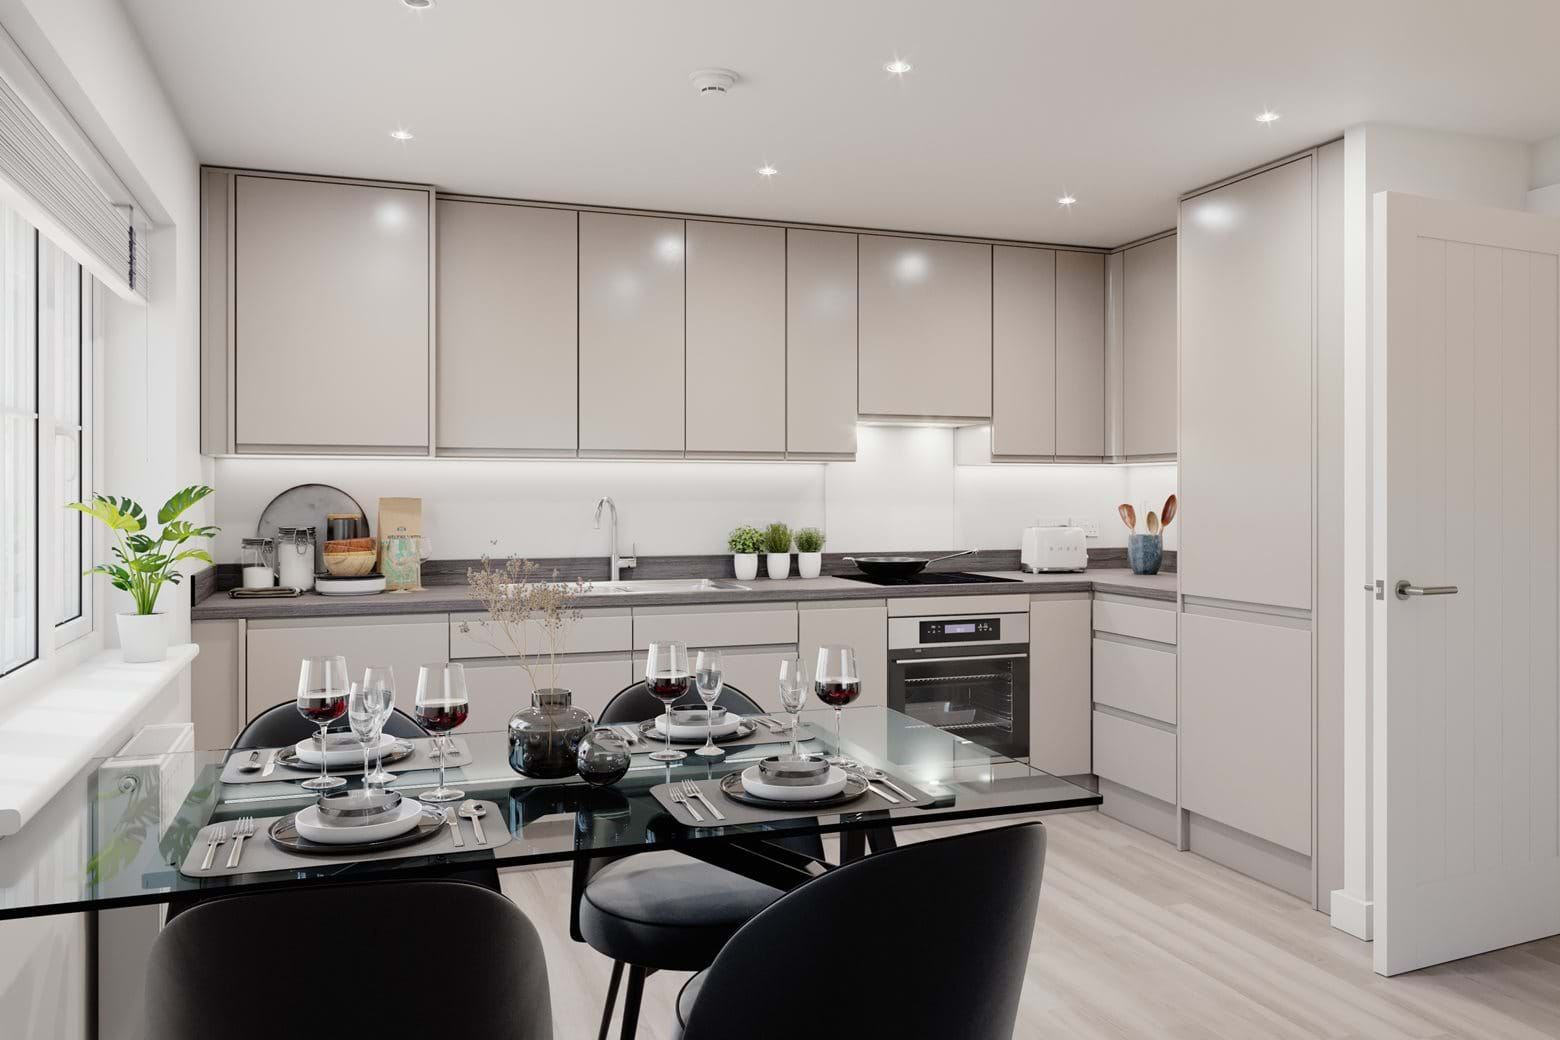 Limebrook Walk boasts impressive specification throughout including built-in appliances